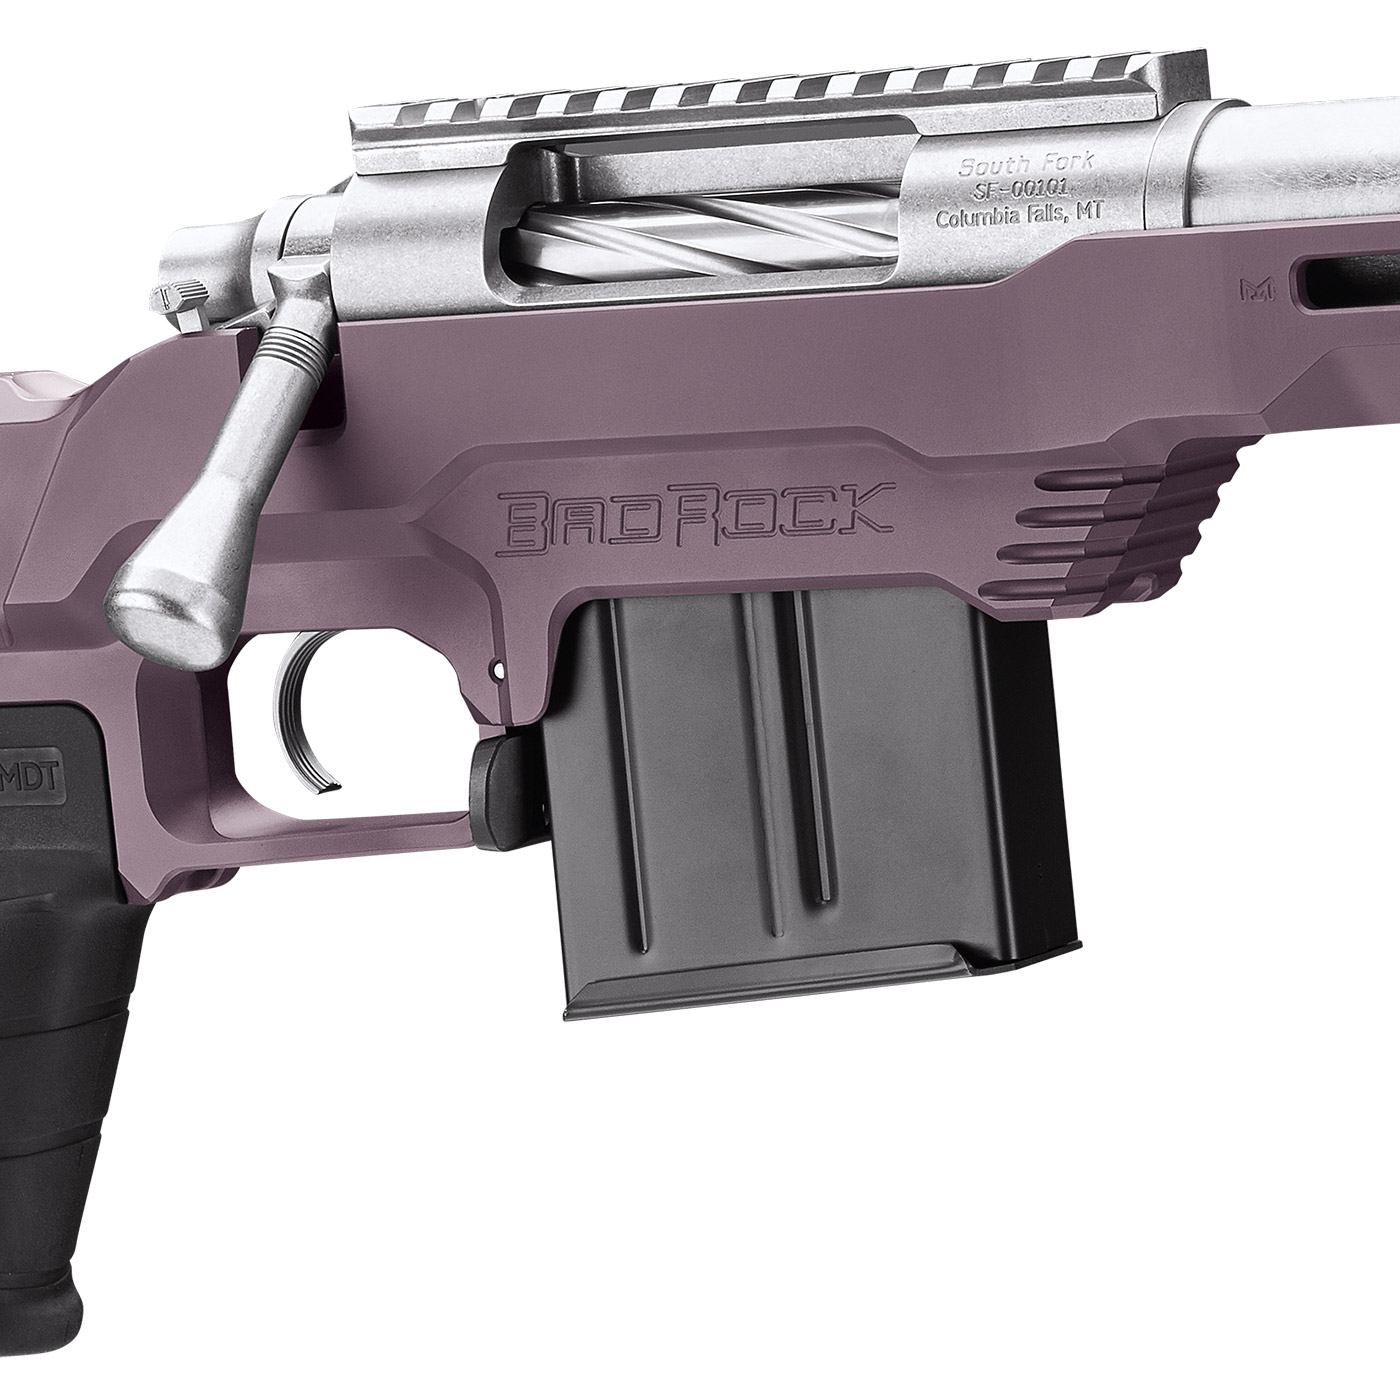 BadRock Precision Rifles South Fork - Firearms for tactical